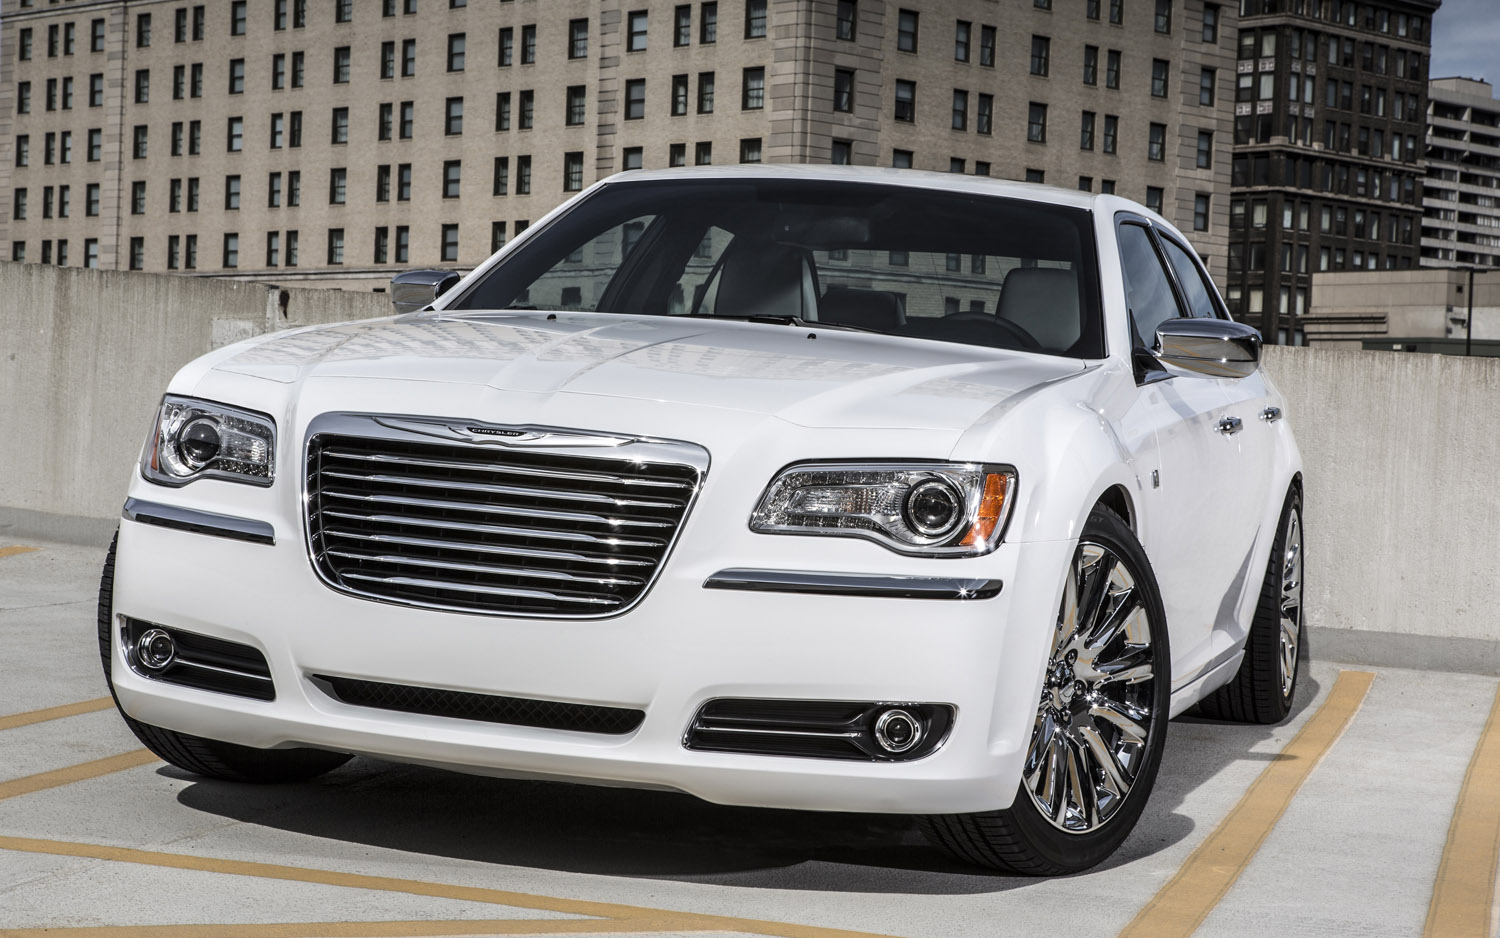 2013 chrysler 300 motown special edition celebrates detroit music [ 1500 x 938 Pixel ]